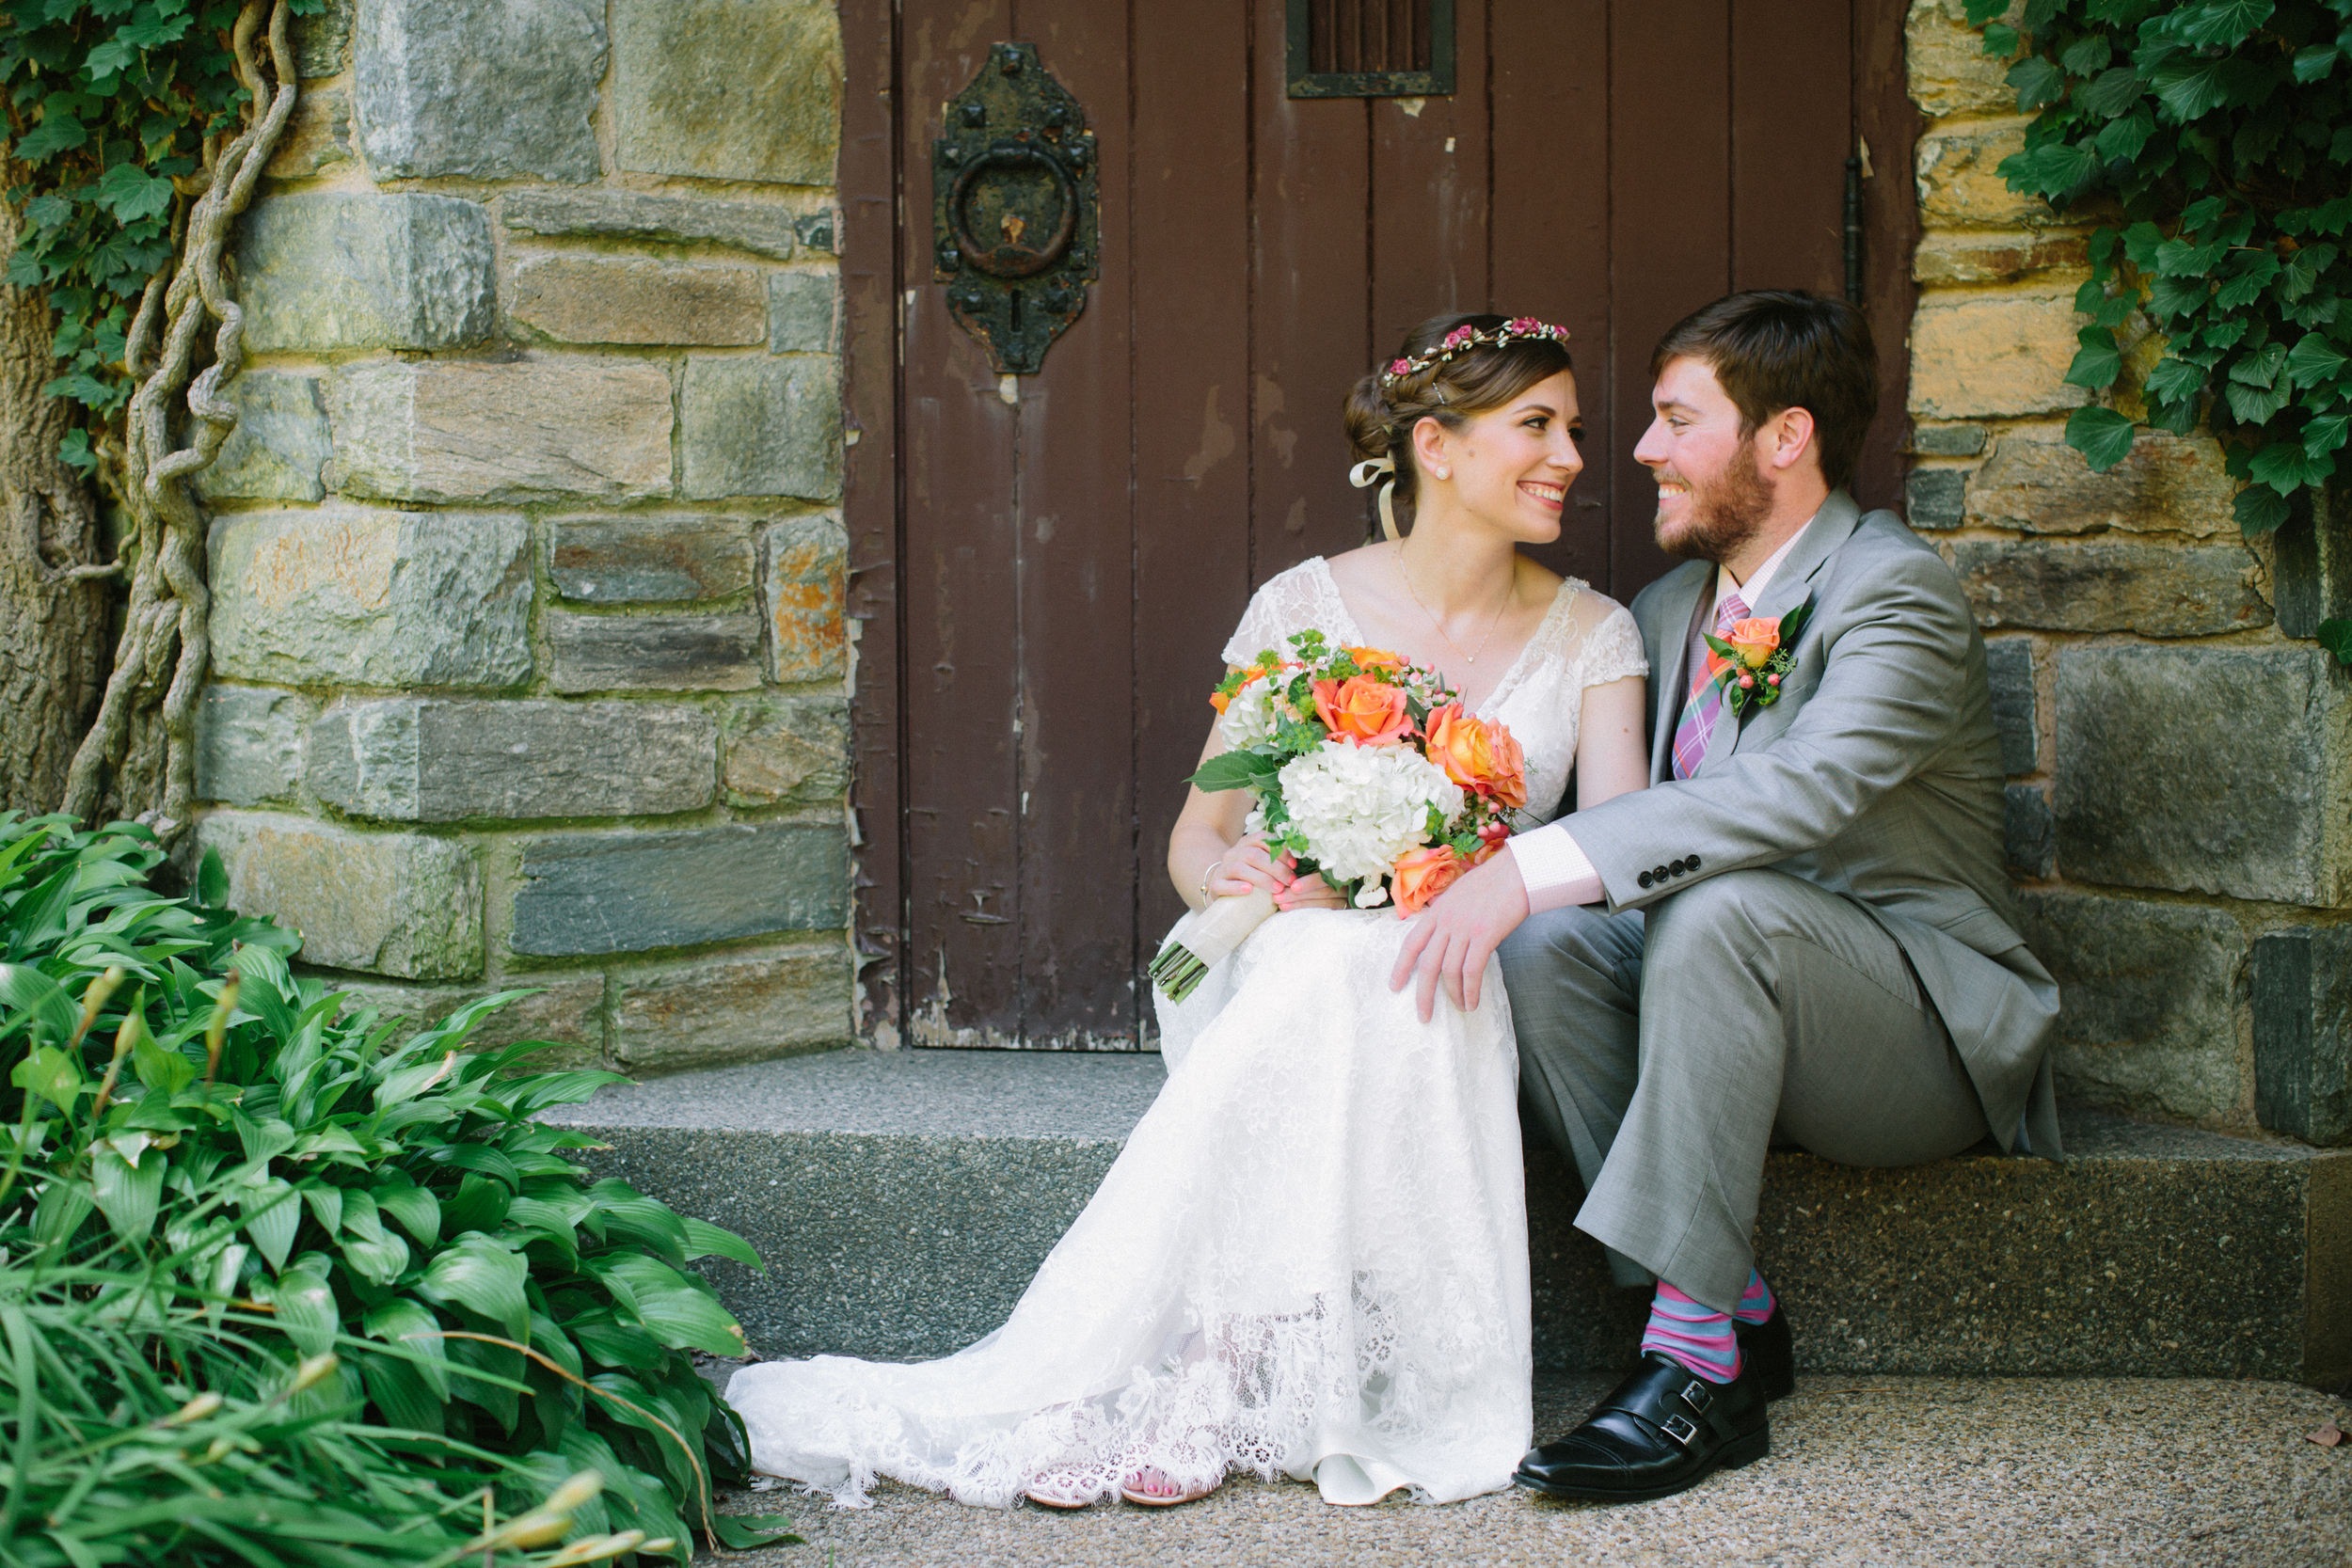 Vness-Photography_Washington-DC-Wedding_Photographer_St-Francis-Hall-Wedding-100.jpg